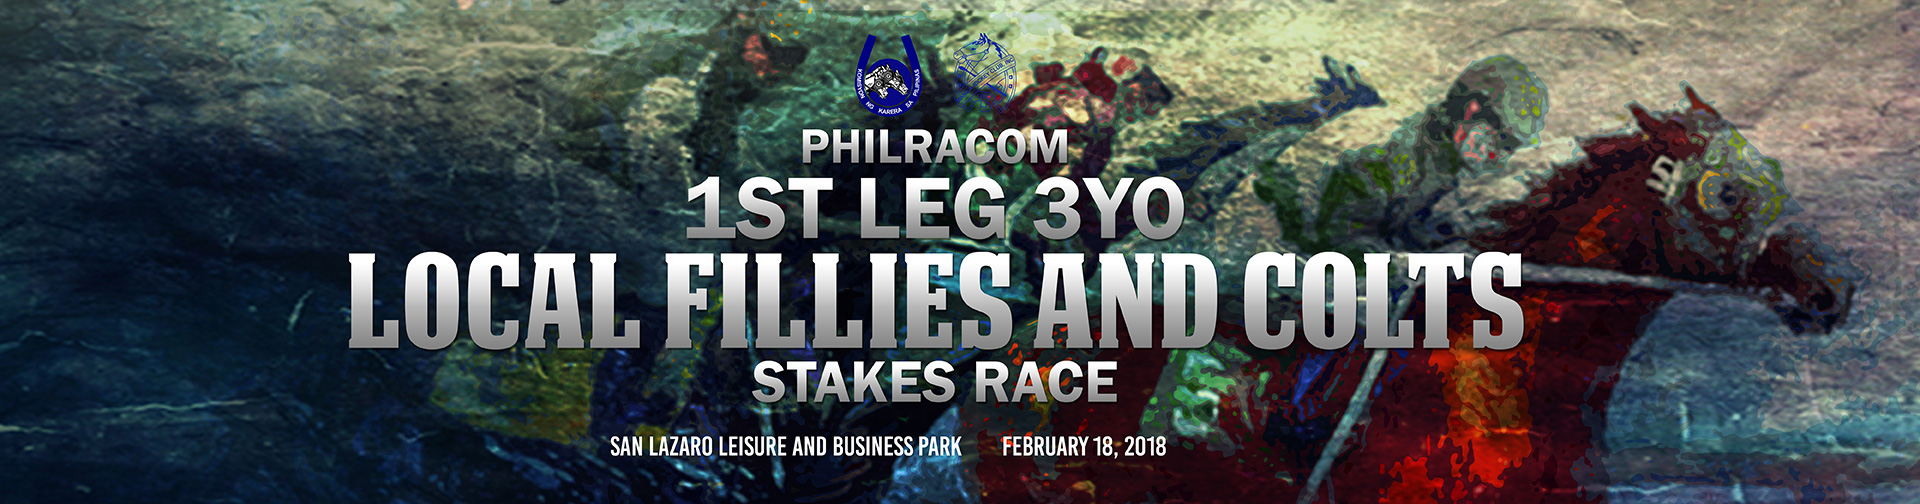 2018 1ST LEG 3YO LOCAL FILLIES AND COLTS STAKES RACE